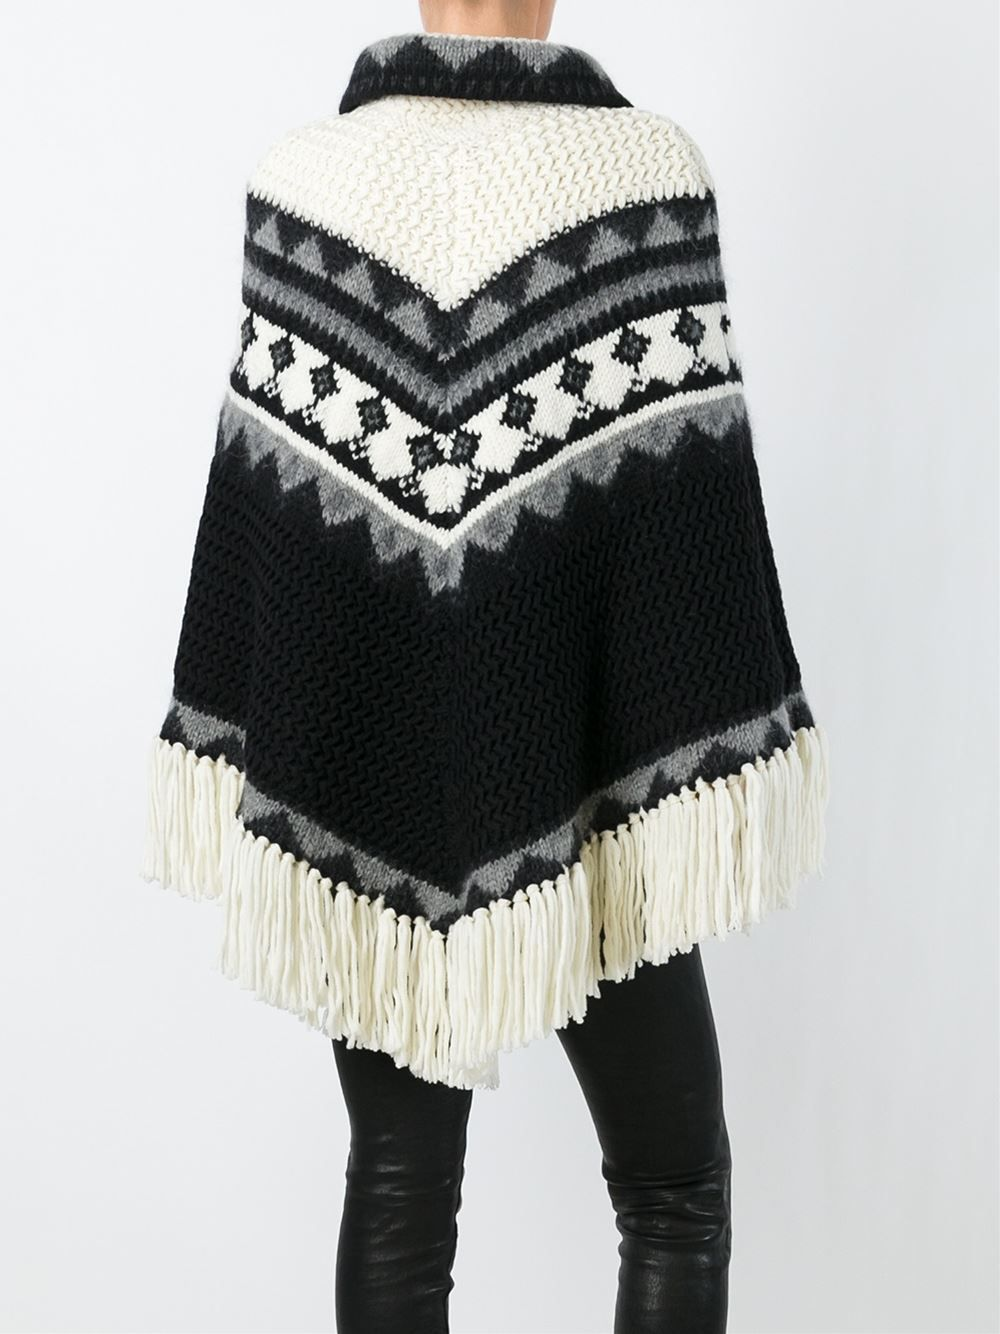 Saint Laurent knitted poncho